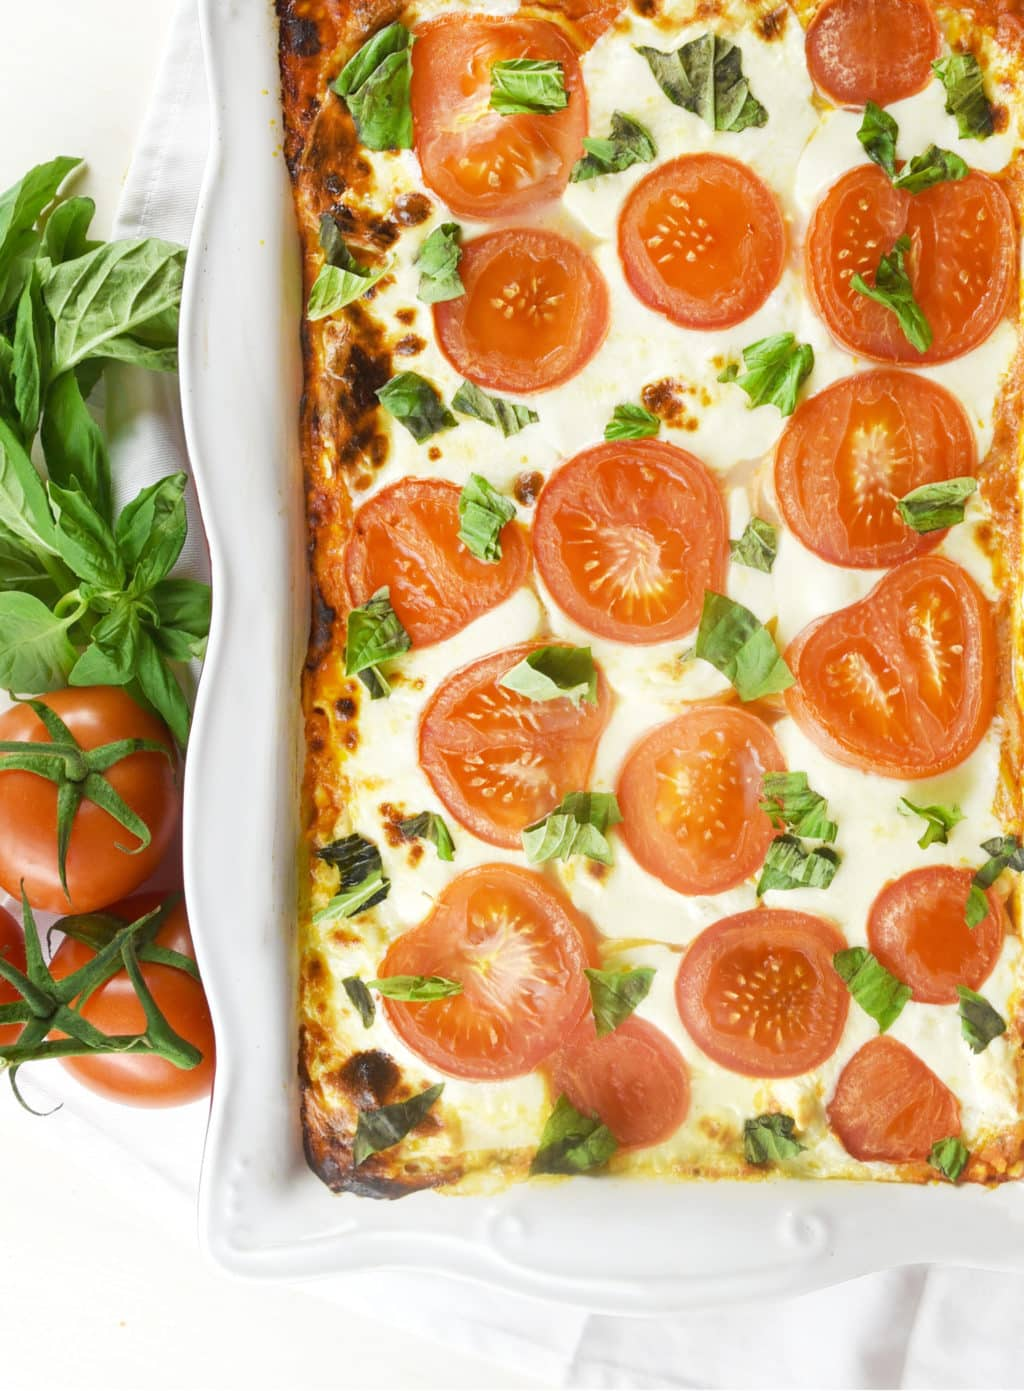 Tomato Basil Baked Spaghetti Casserole! Delicious and creamy with the fresh taste of tomatoes and basil!